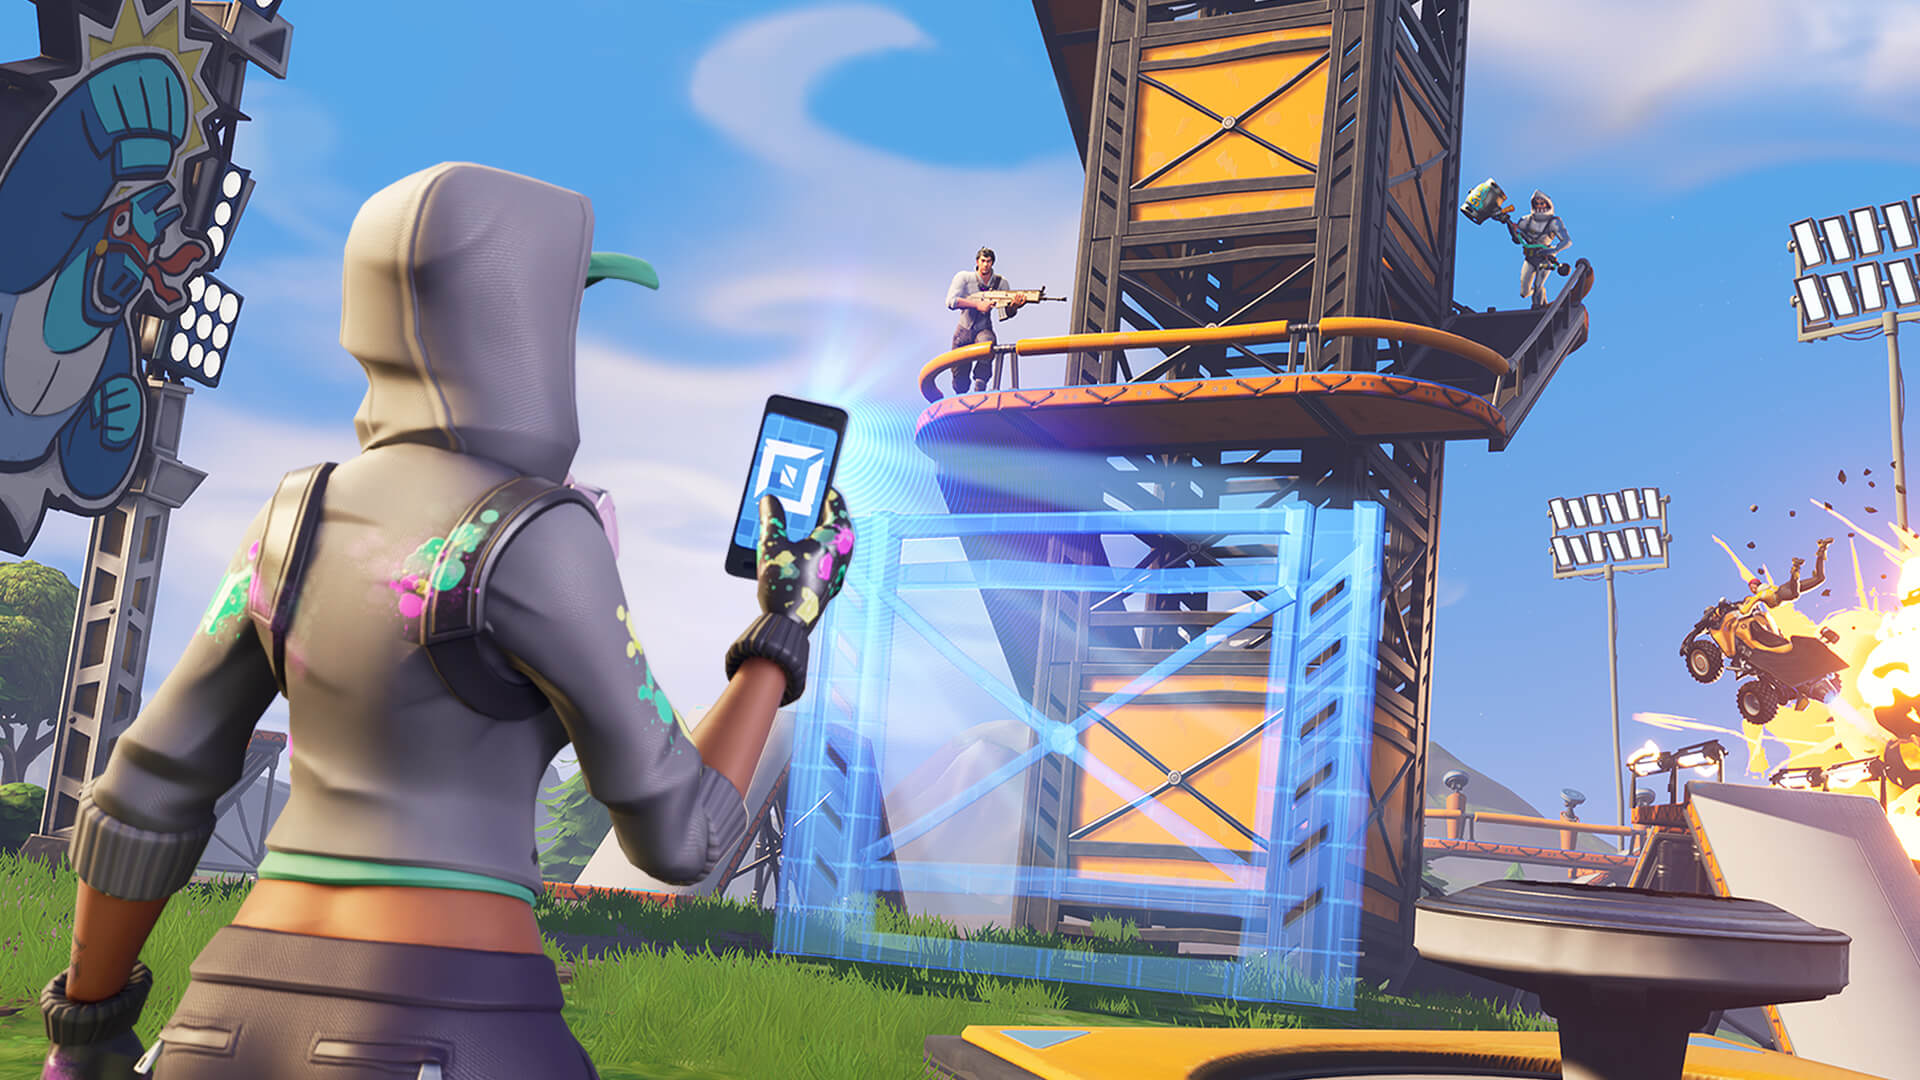 the best fortnite creative practice courses - how to edit walls in fortnite